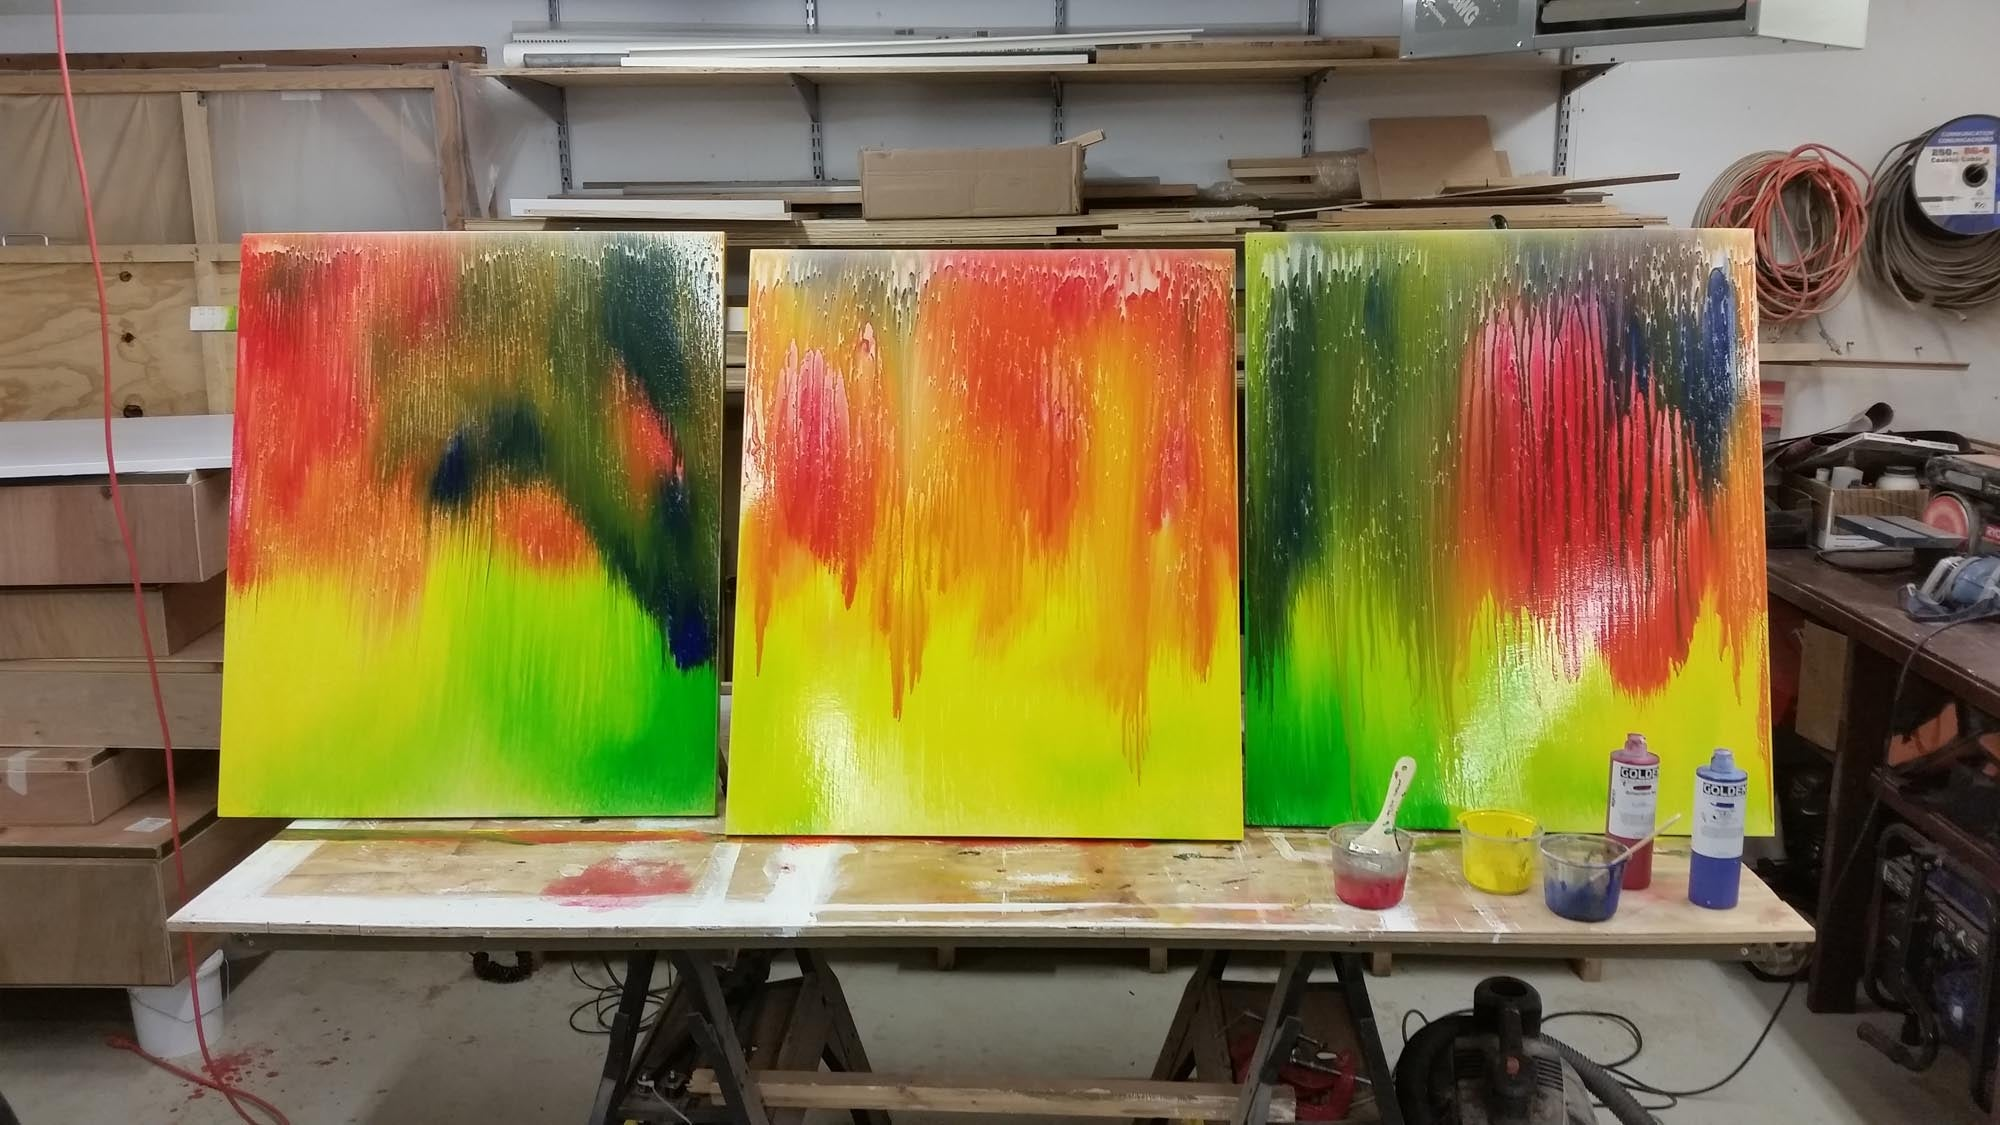 How To Make Large Acrylic Paintings: From Raw Materials To